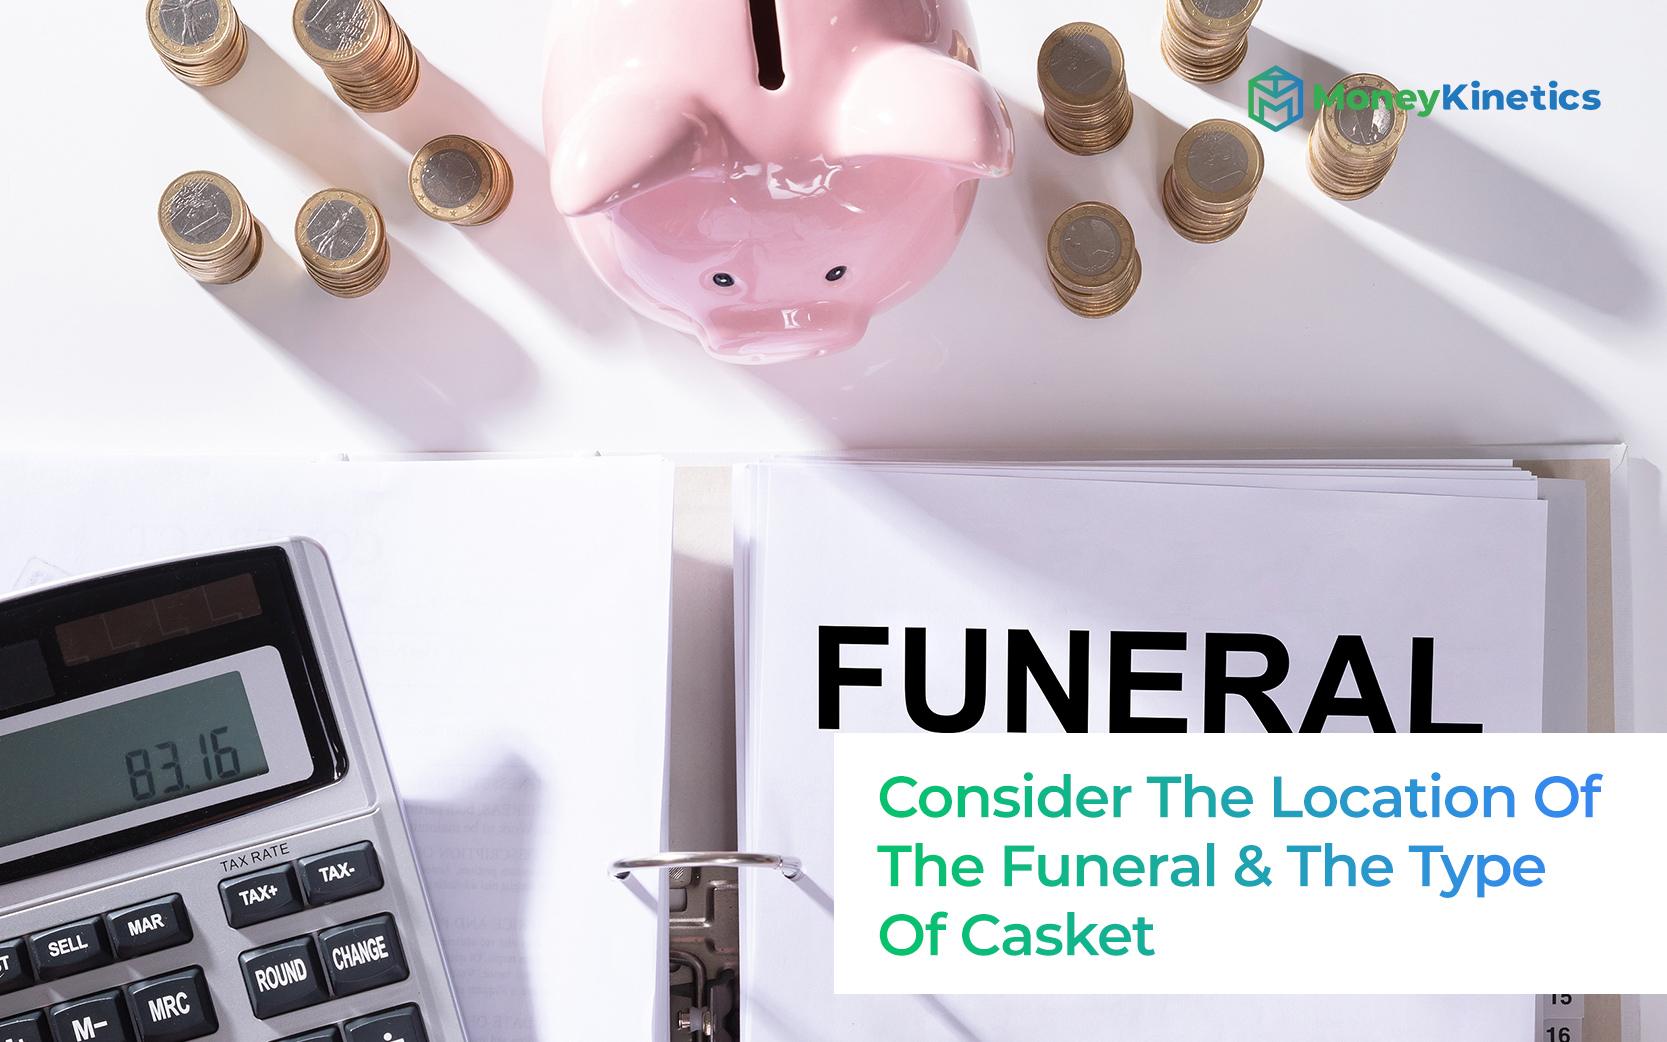 Consider-The-Location-And-Type-Of-Casket-Funeral-Planning-Money-Kinetics-Singapore